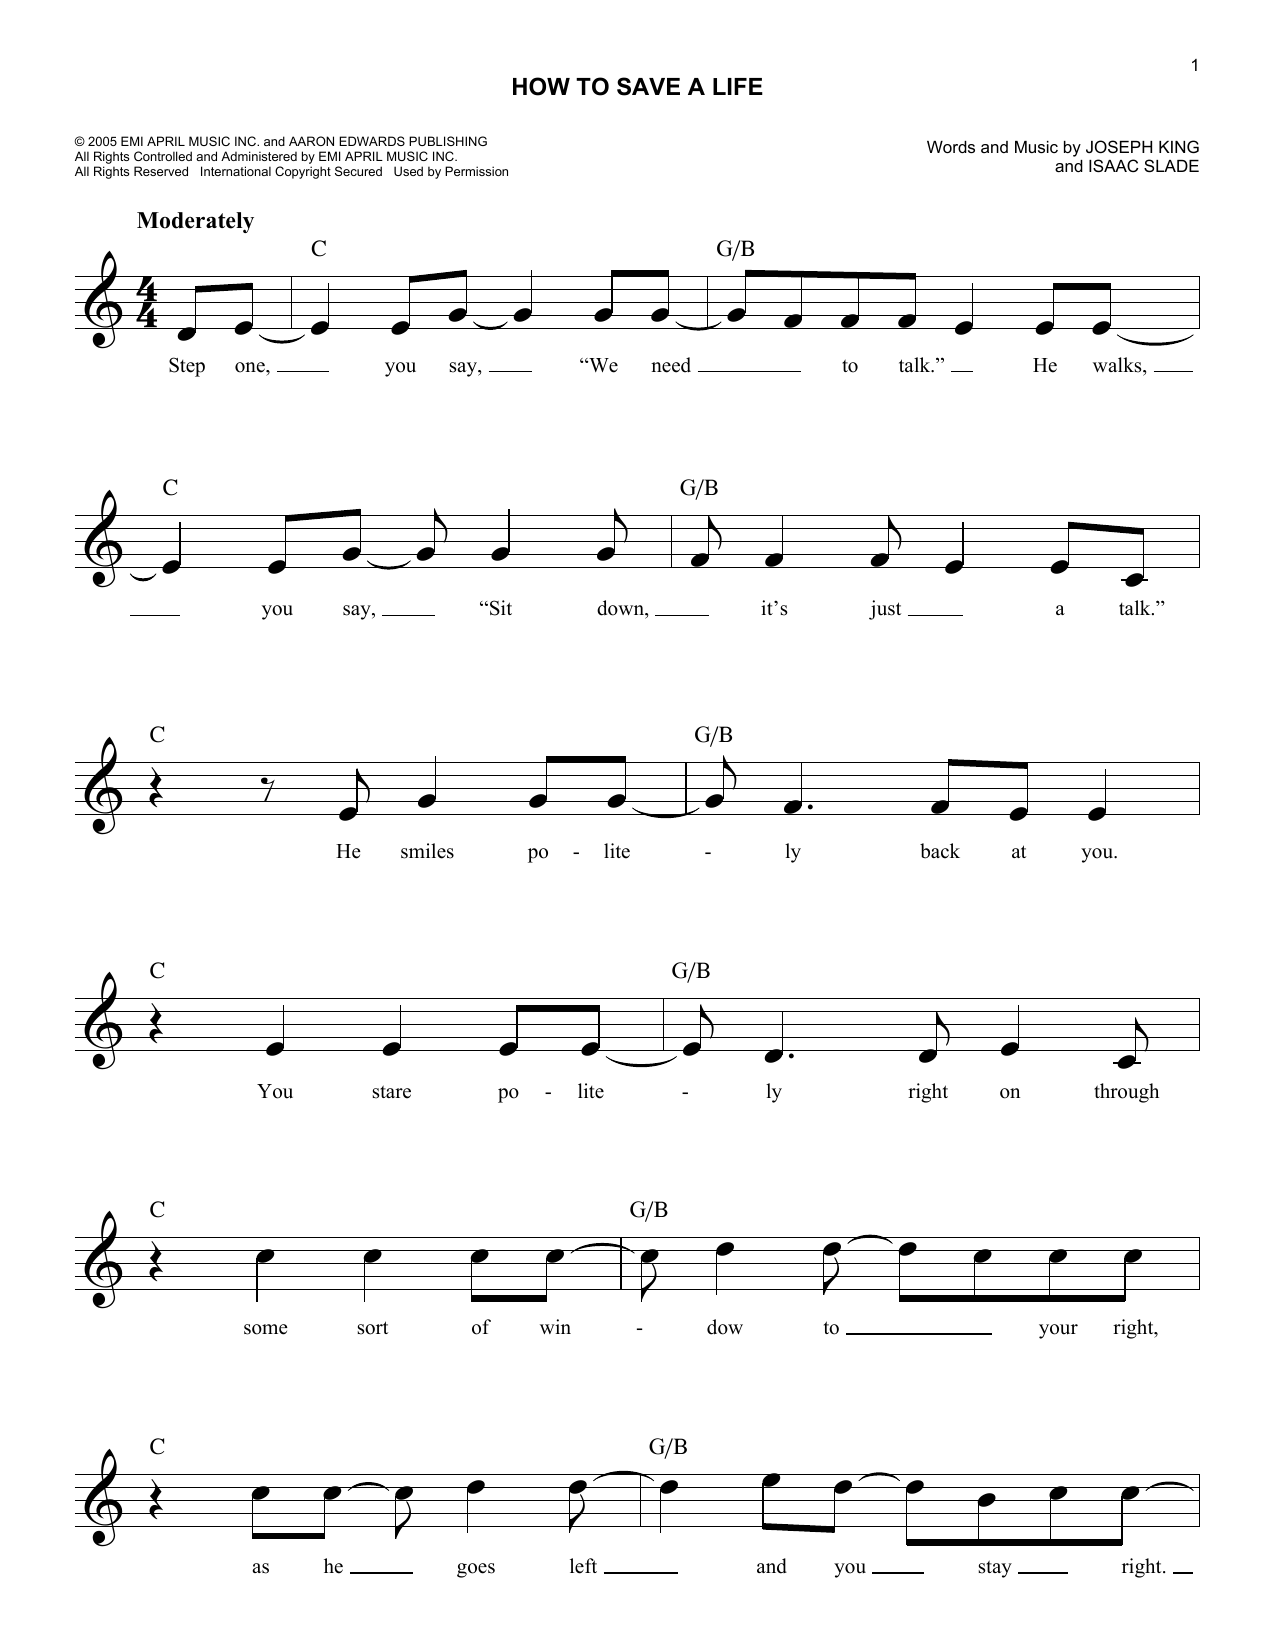 How To Save A Life Sheet Music